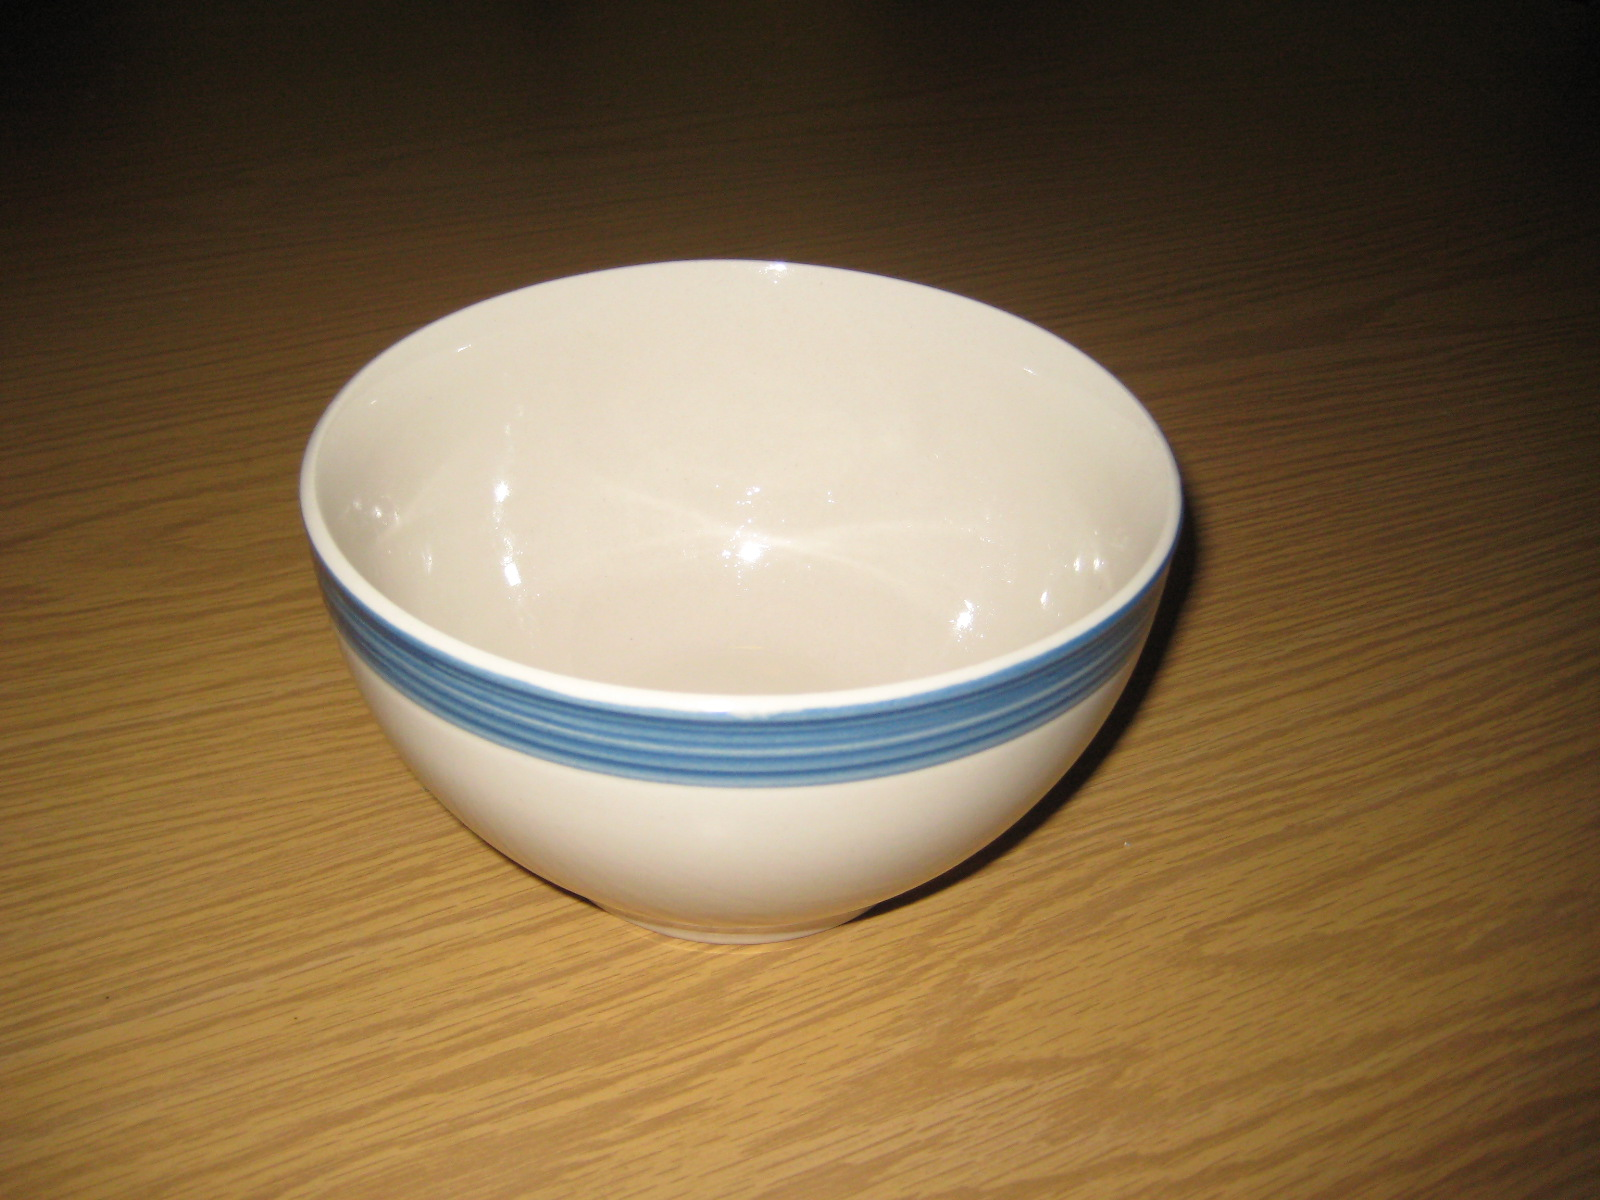 Simple-ceramic-bowl.jpg